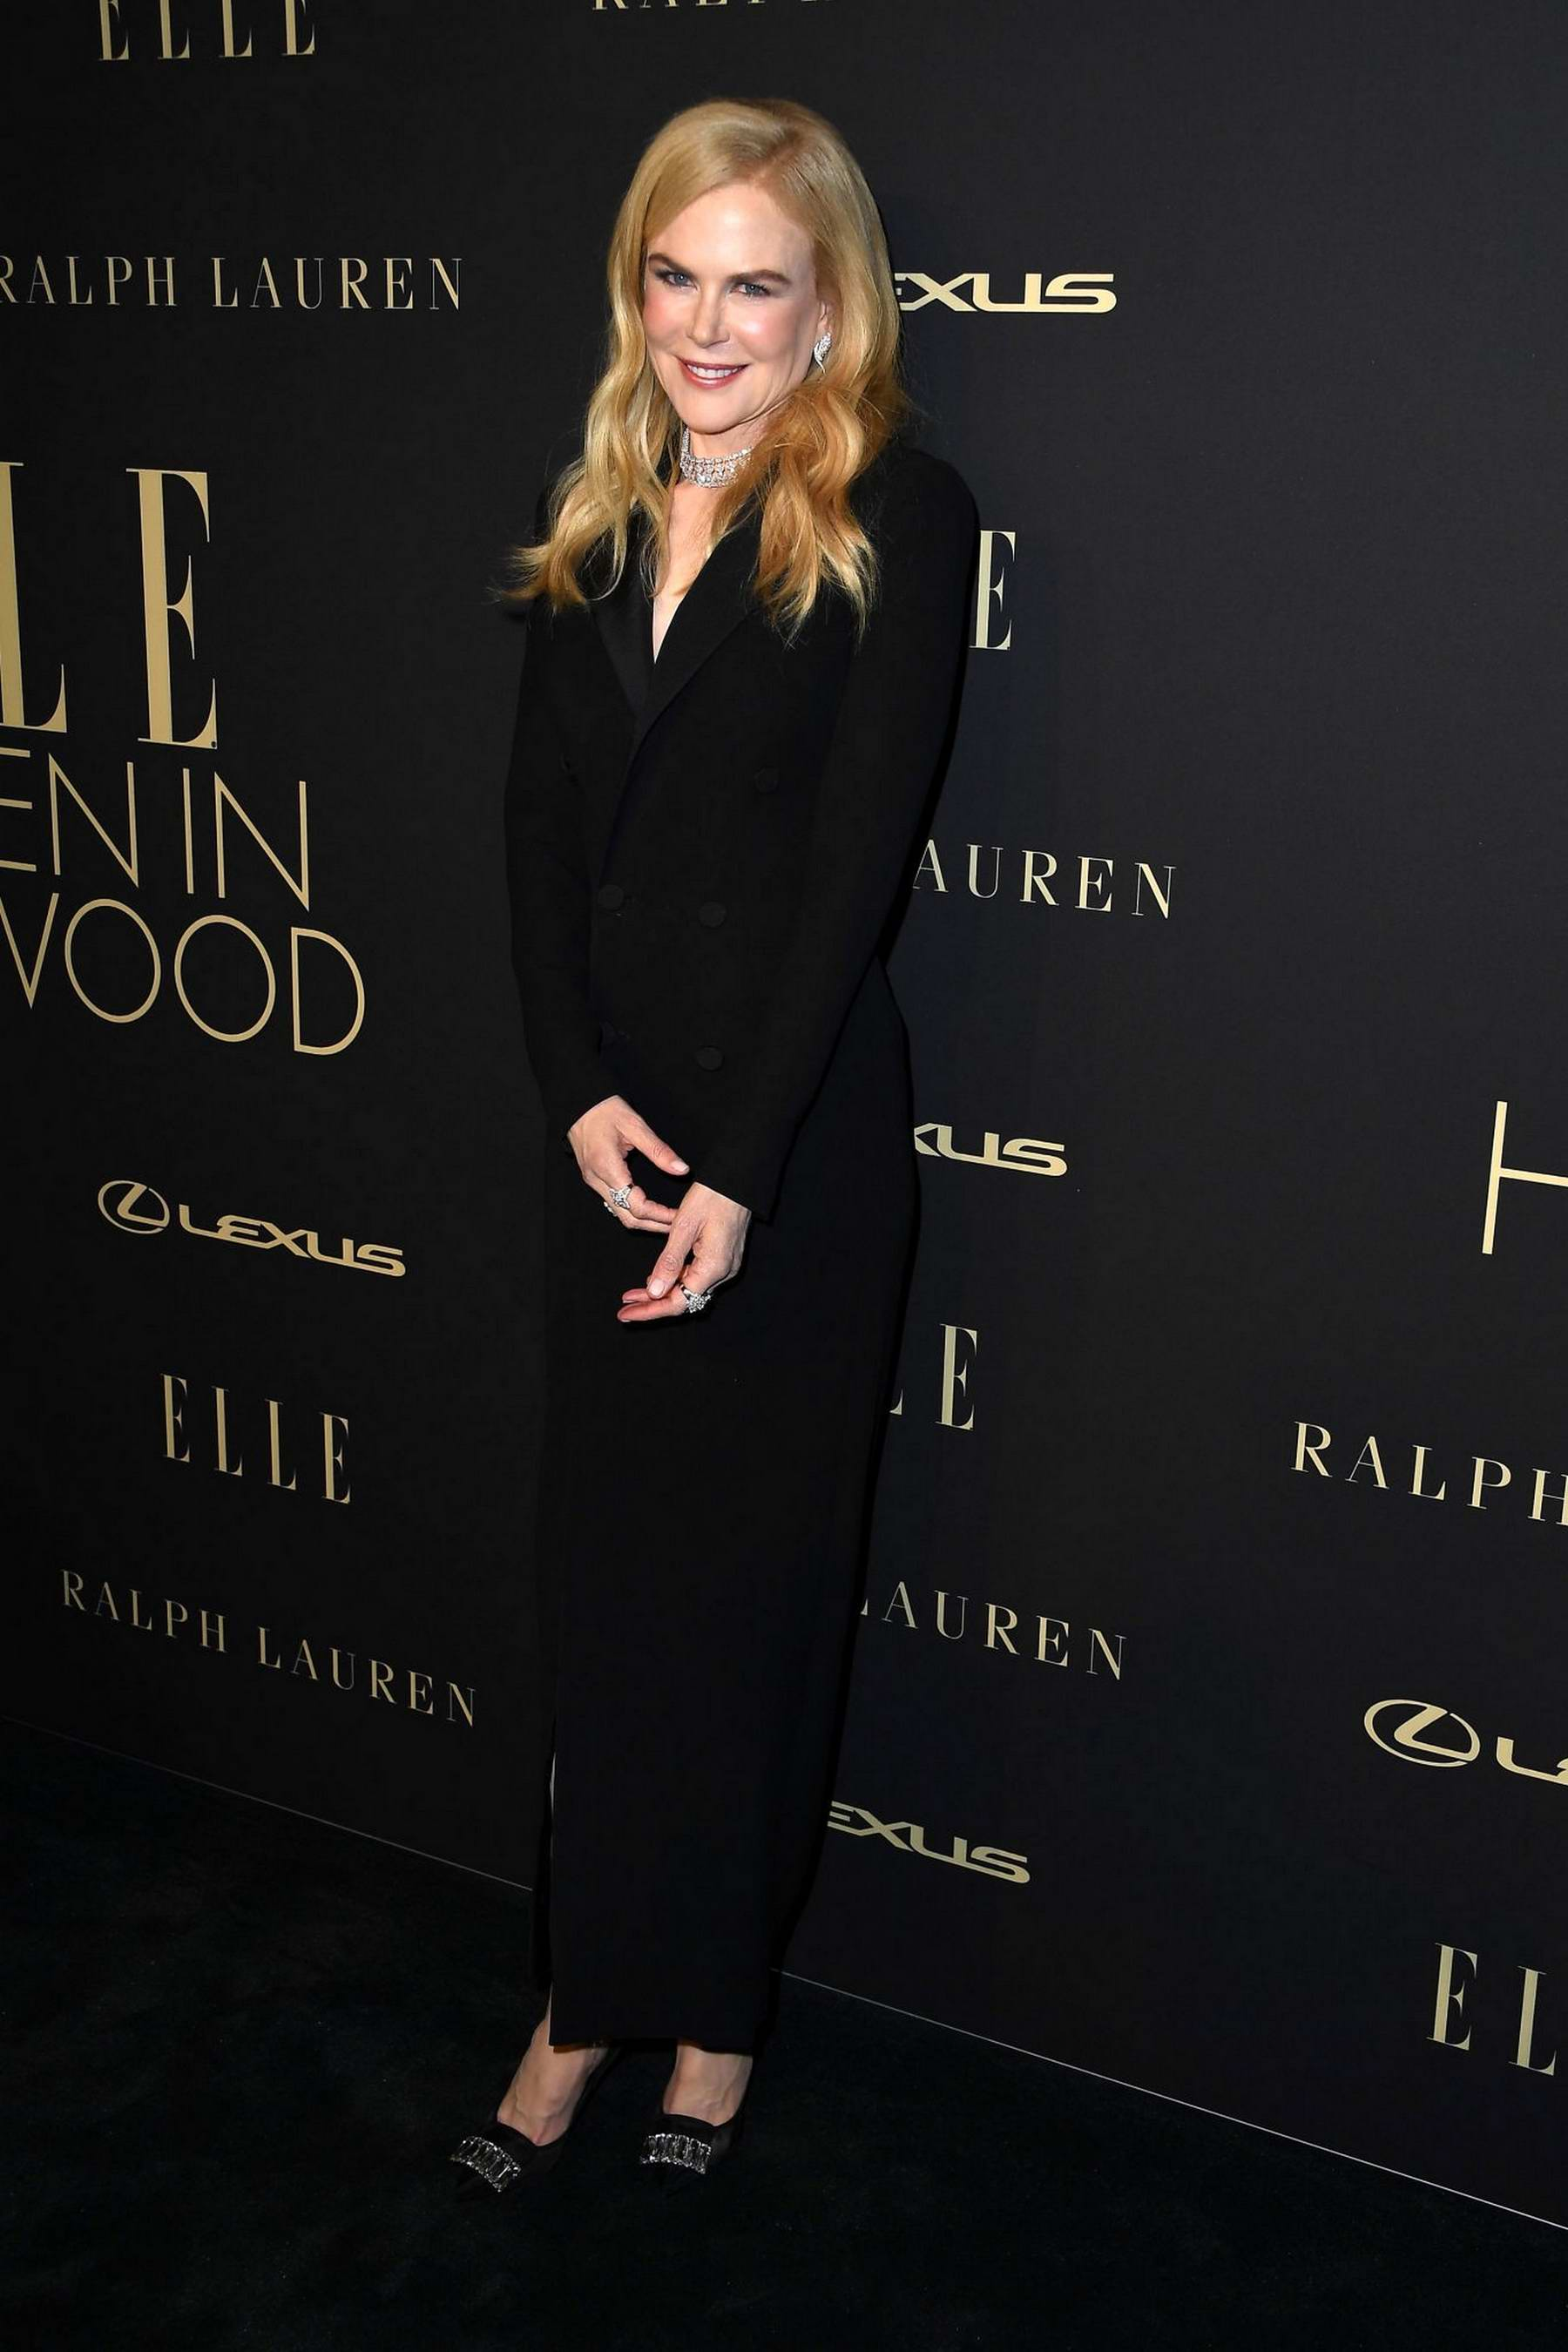 Nicole Kidman attends ELLE's 26th Annual Women In Hollywood Celebration at The Four Seasons Hotel in Beverly Hills, California